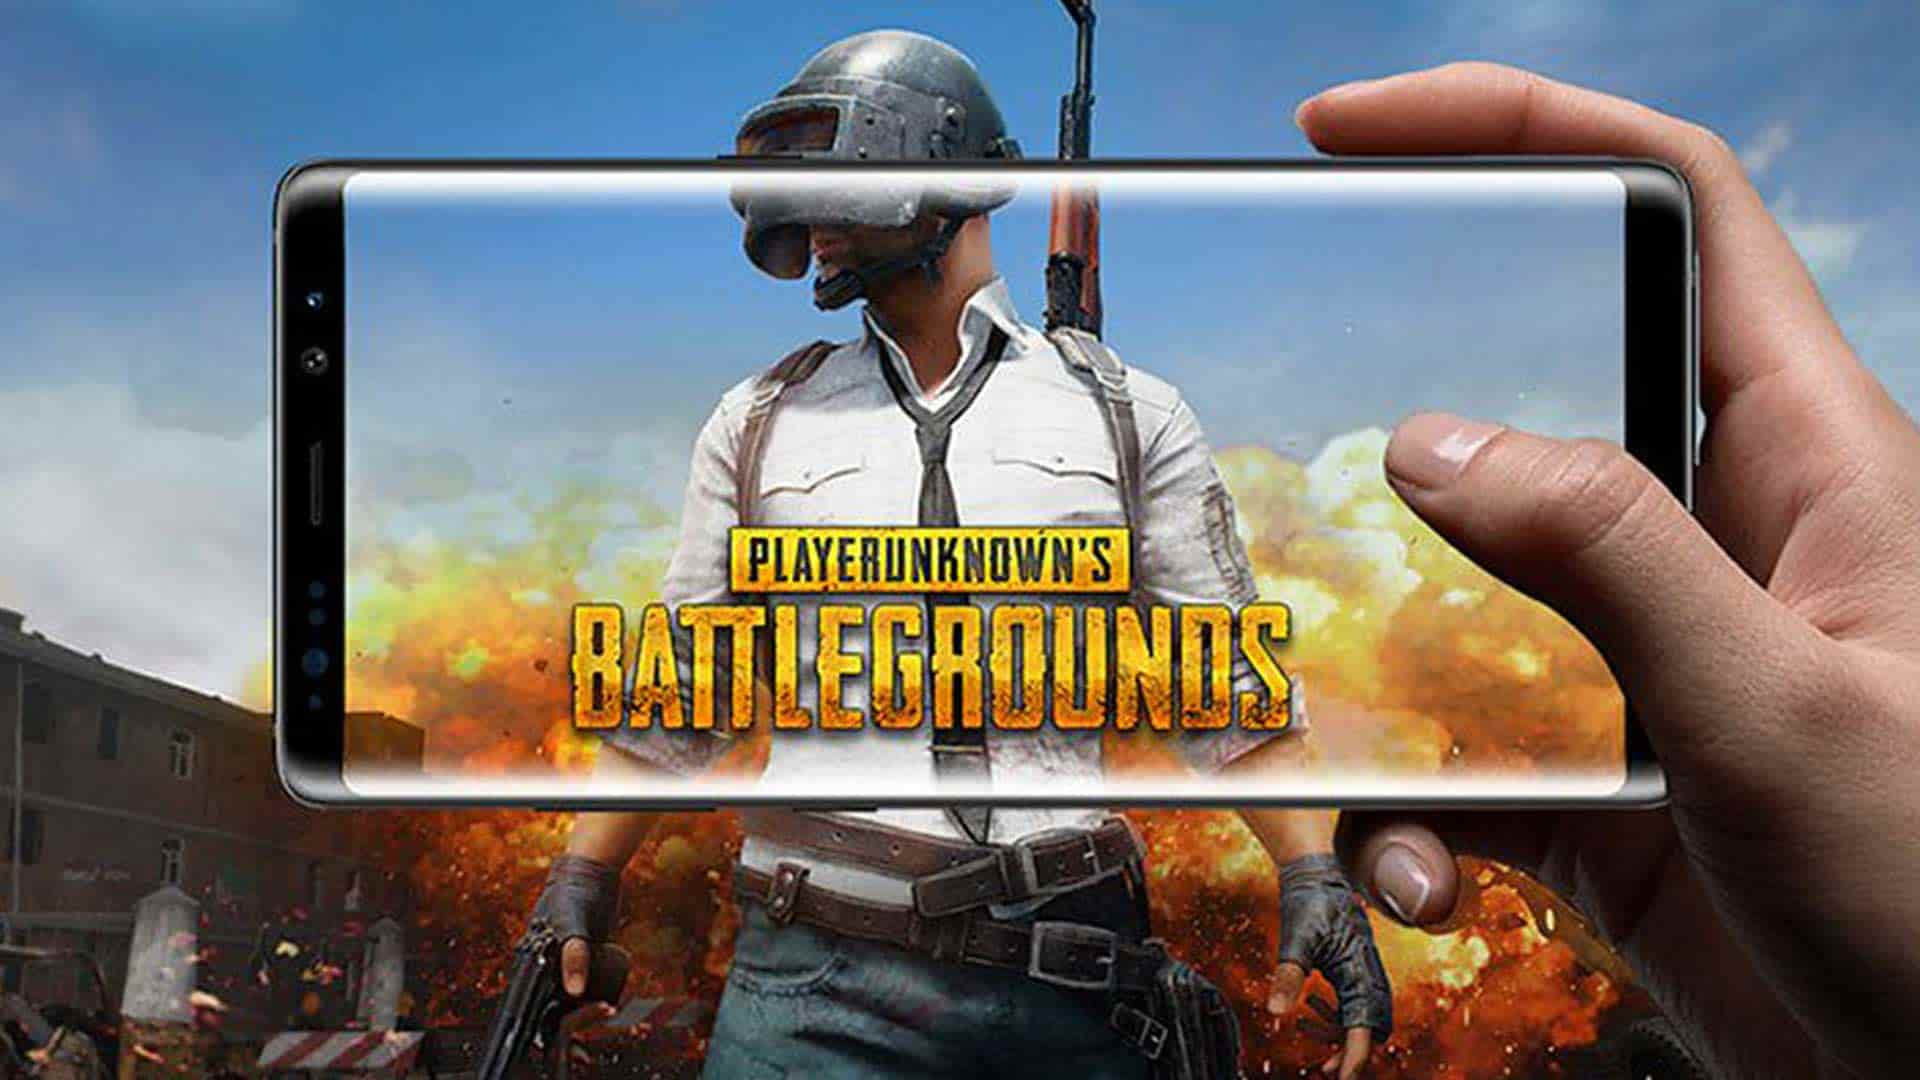 PUBG Mobile Update 0.4.0 Adds Arcade Mode, Training Grounds & More